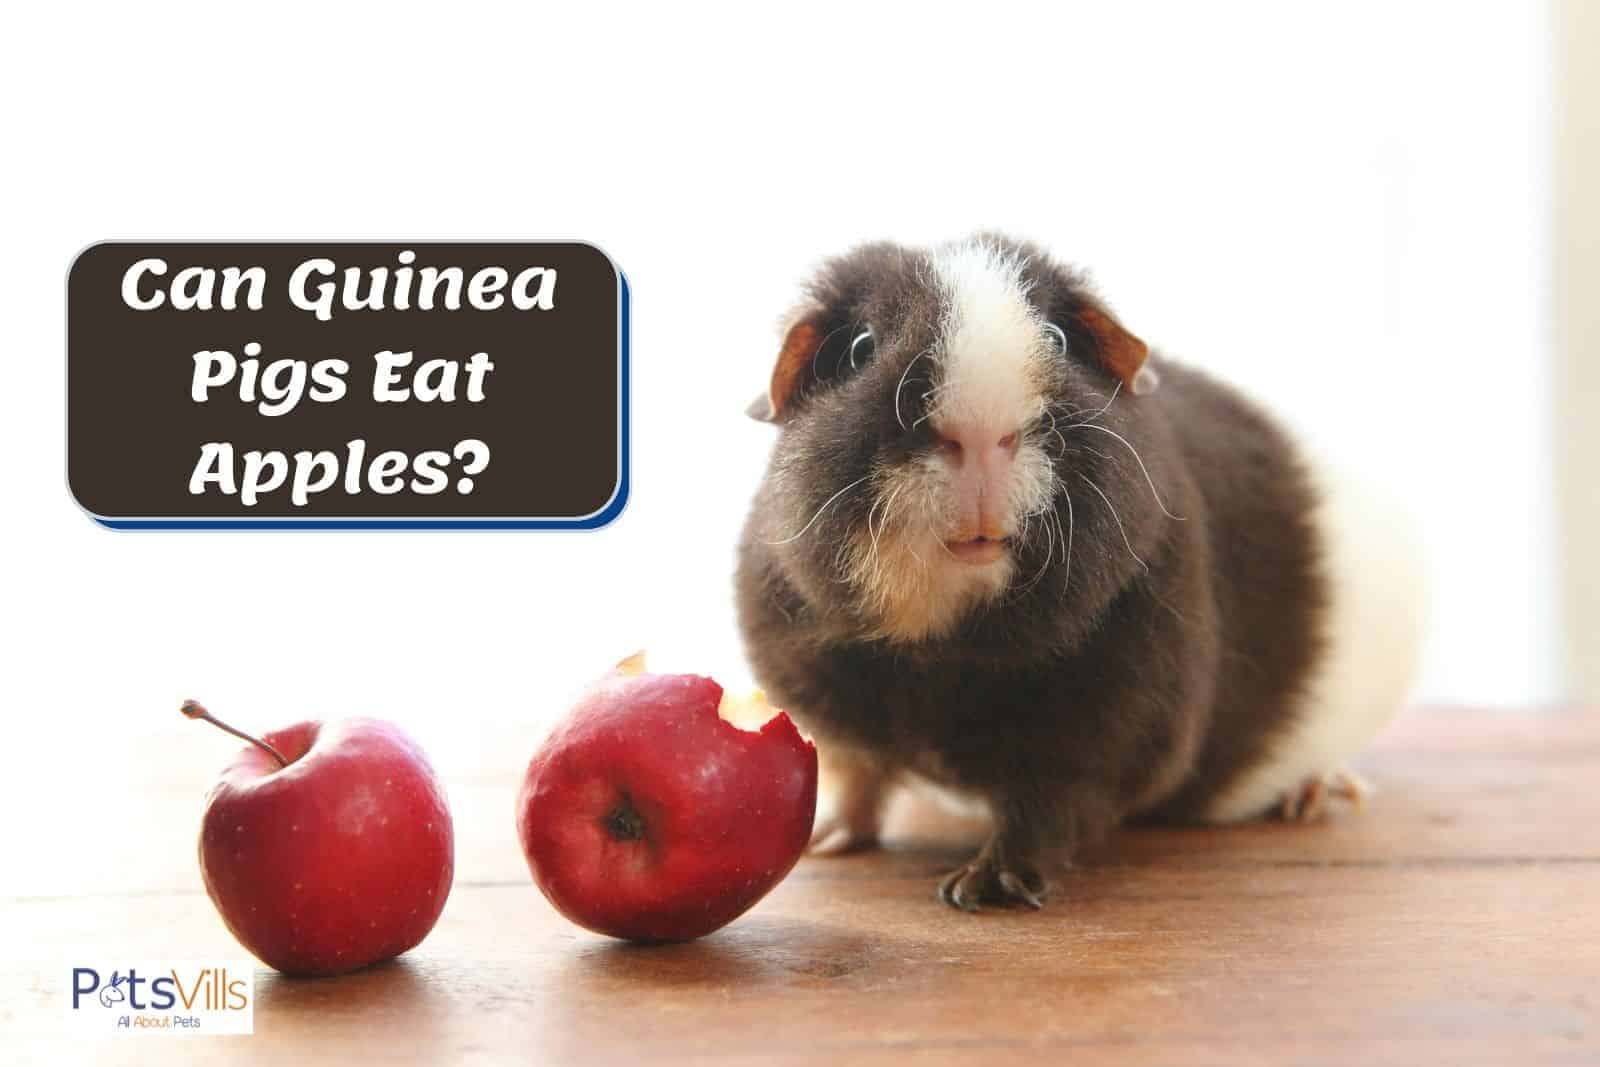 a cute guinea pig with two red apples in front. can guinea pigs eat apples?